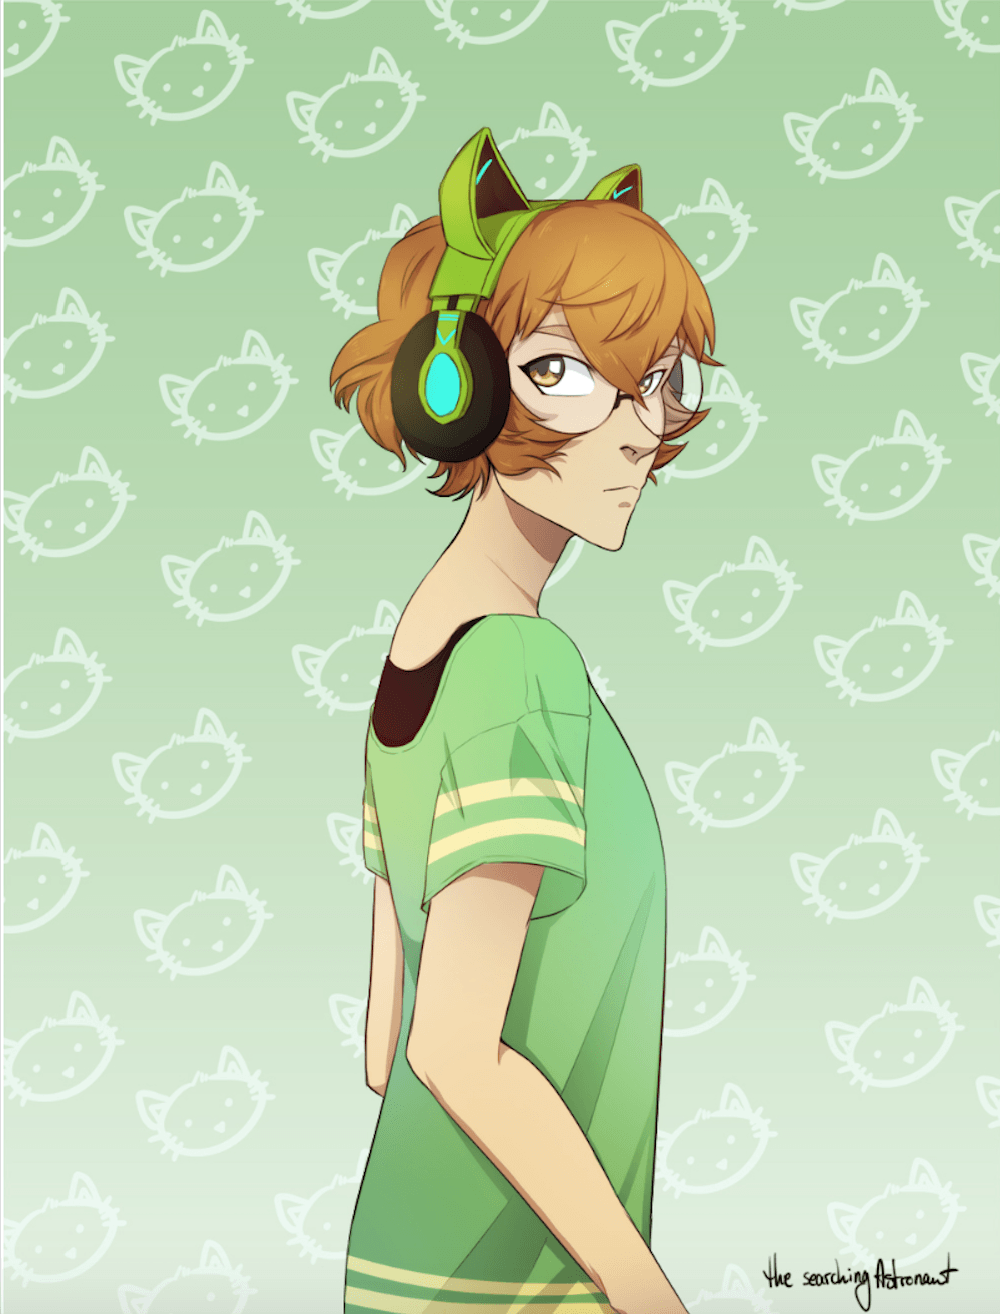 Pidge behind a green kitty cat backgrounds from Voltron Legendary